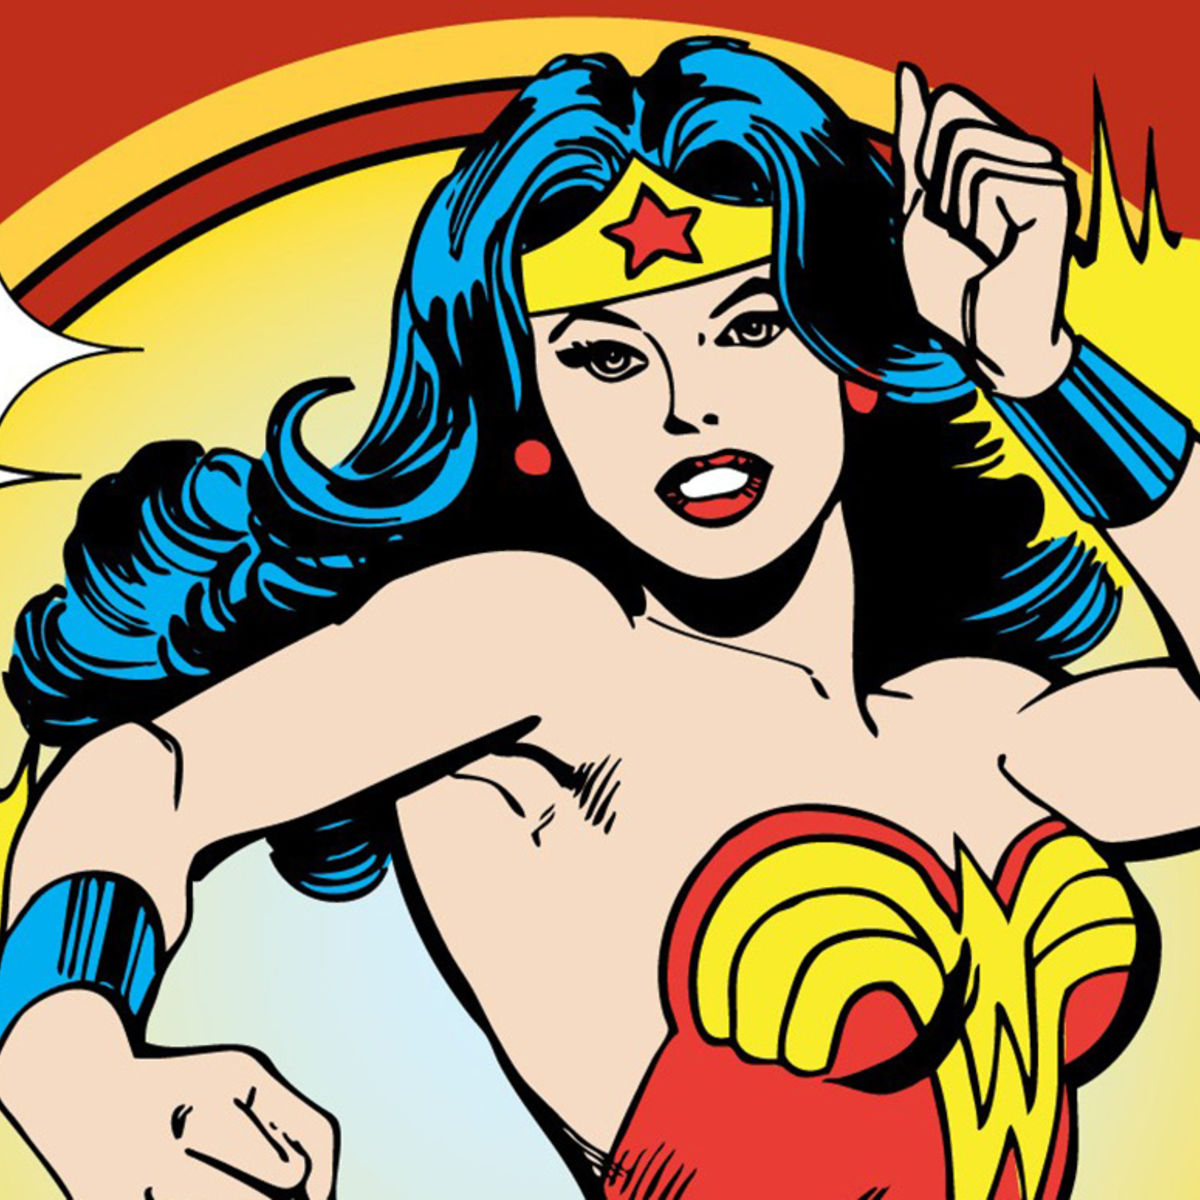 wonder-woman-comic-should-wonder-woman-keep-her-classic-costume-in-the-upcoming-movie.jpeg